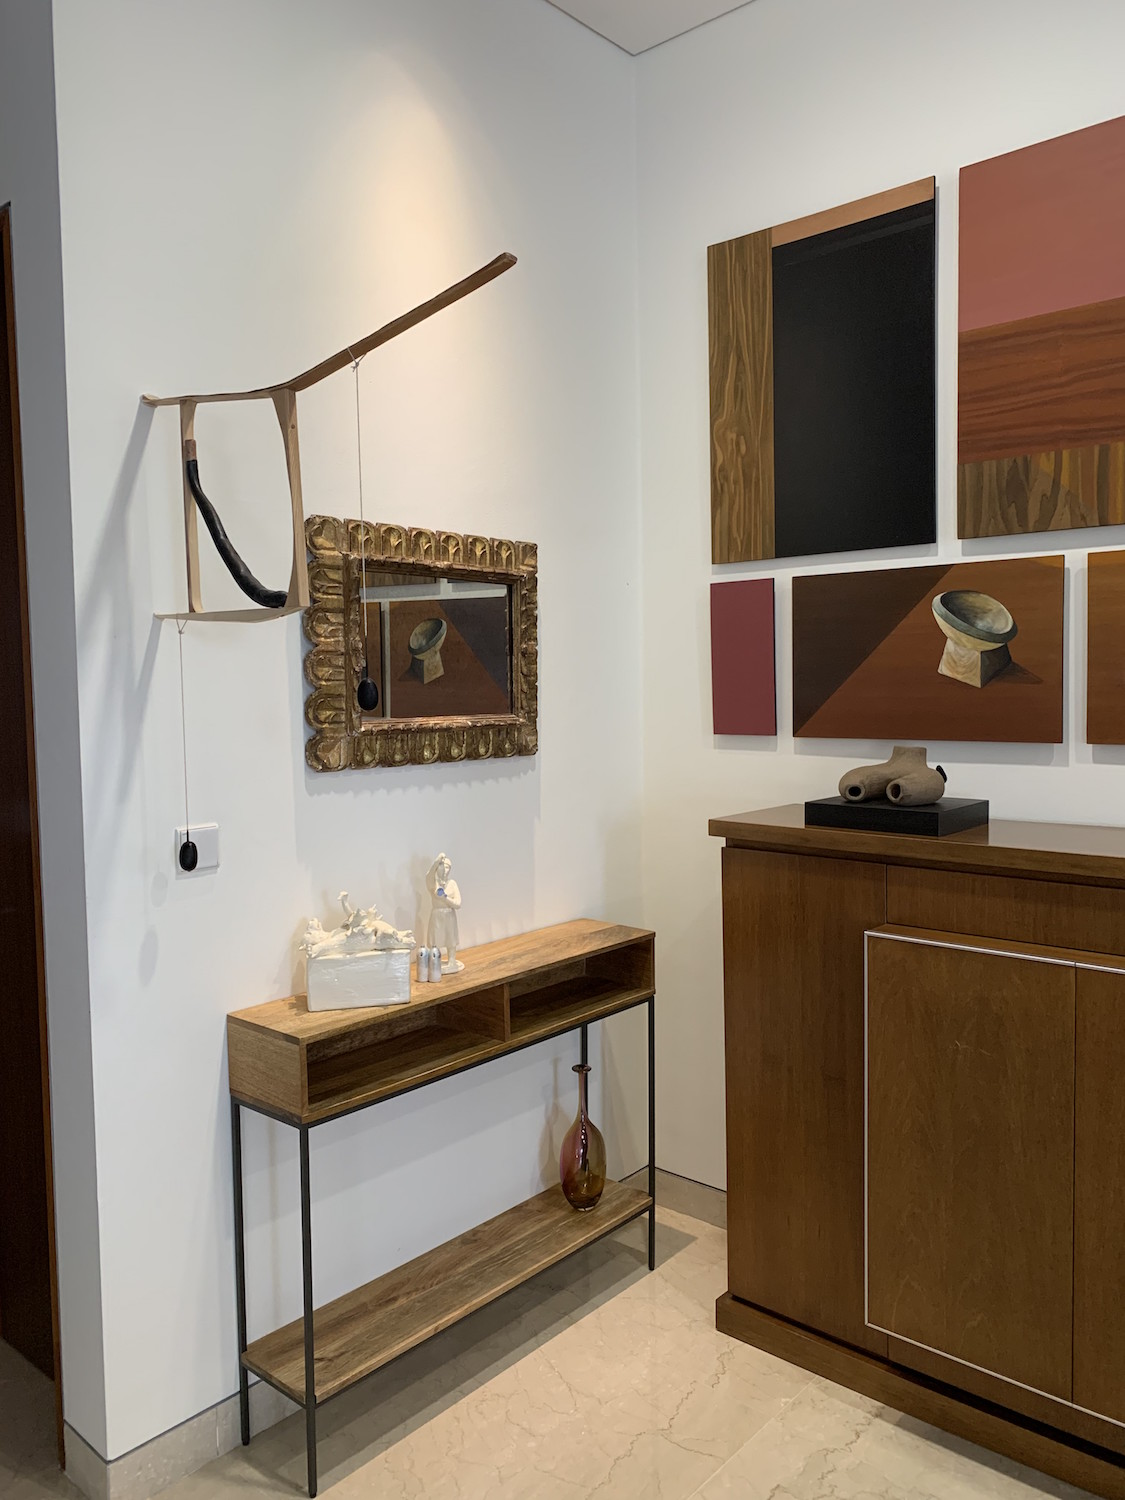 Part of the collection with artworks on the left wall by Diego Bianchi and Jordan Maclachlan. On the right wall featuring a large painting by Hulda Guzman and sculpture on the cabinet by Gala Porras-Kim. Courtesy of Benedicta M. Badia de Nordenstahl.